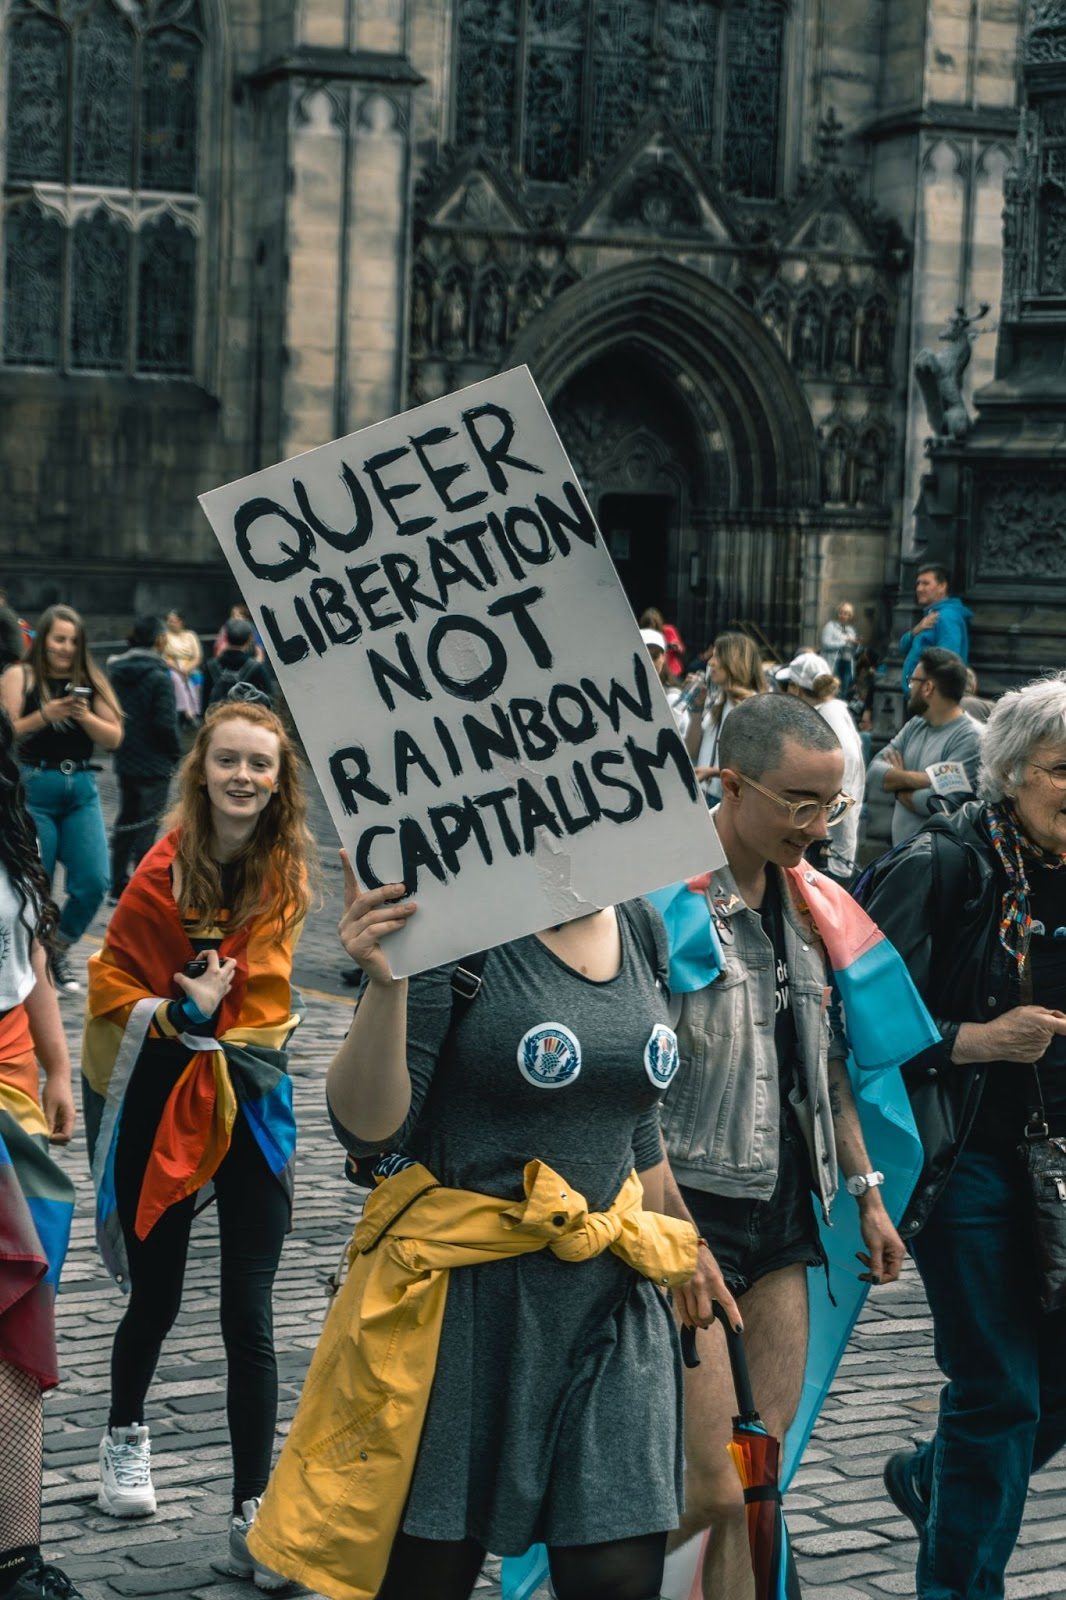 """Protestor holding a handmade sign that reads, """"Queer liberation, not rainbow capitalism""""."""